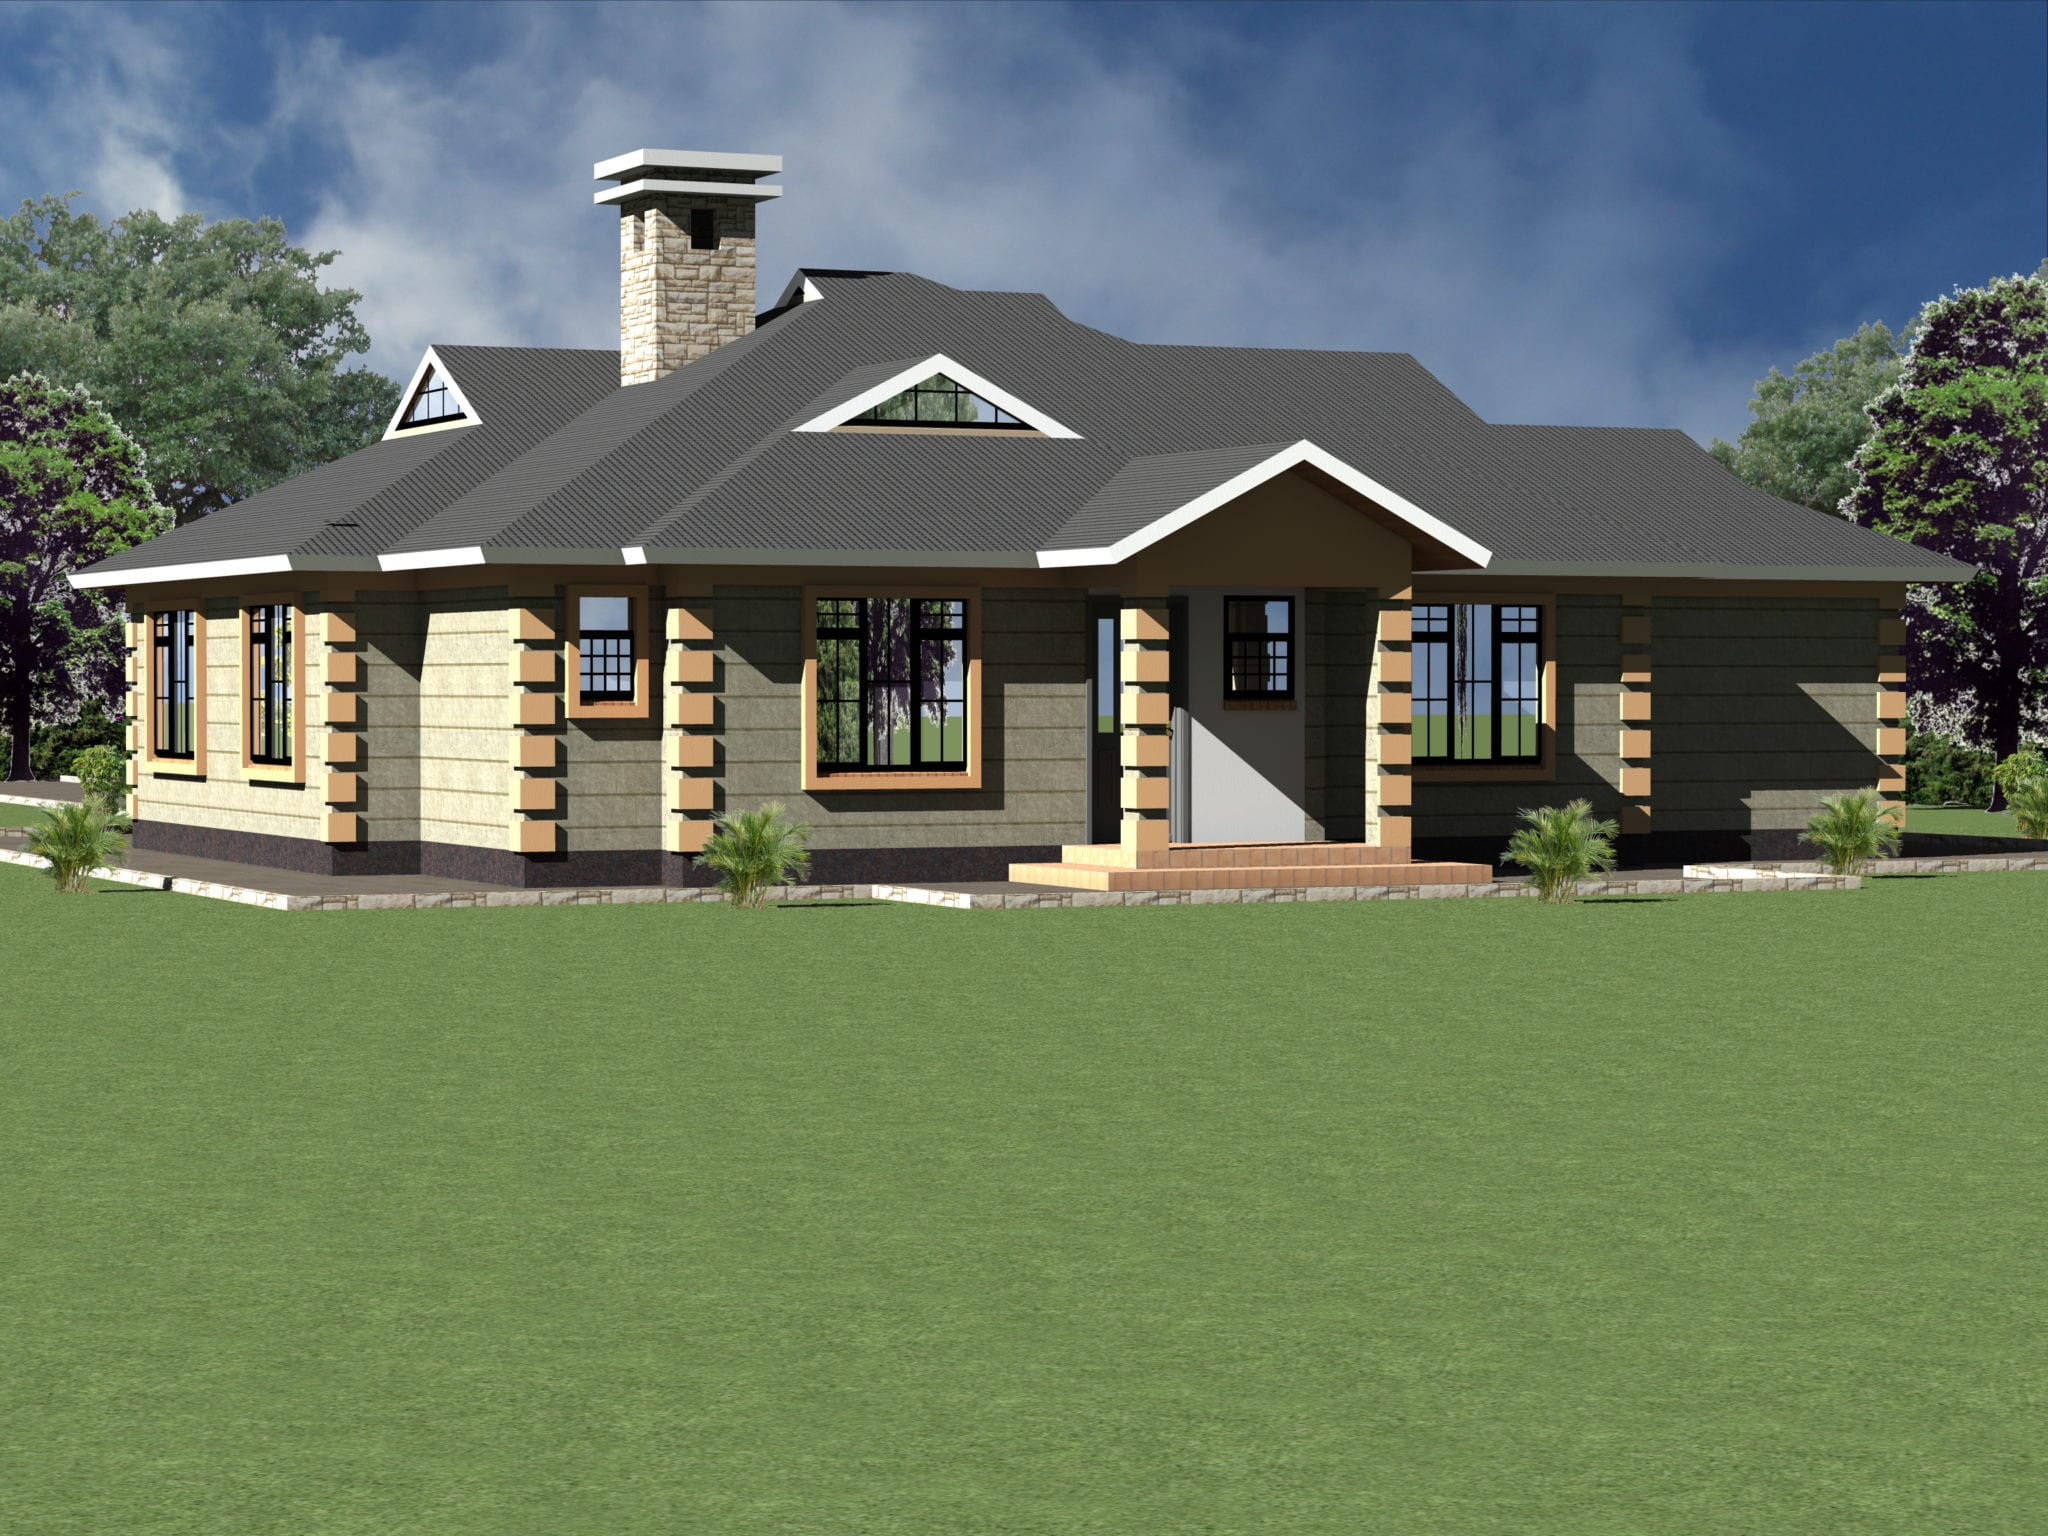 4 Bedroom Bungalow House Designs In Kenya Bedroom Aesthetic